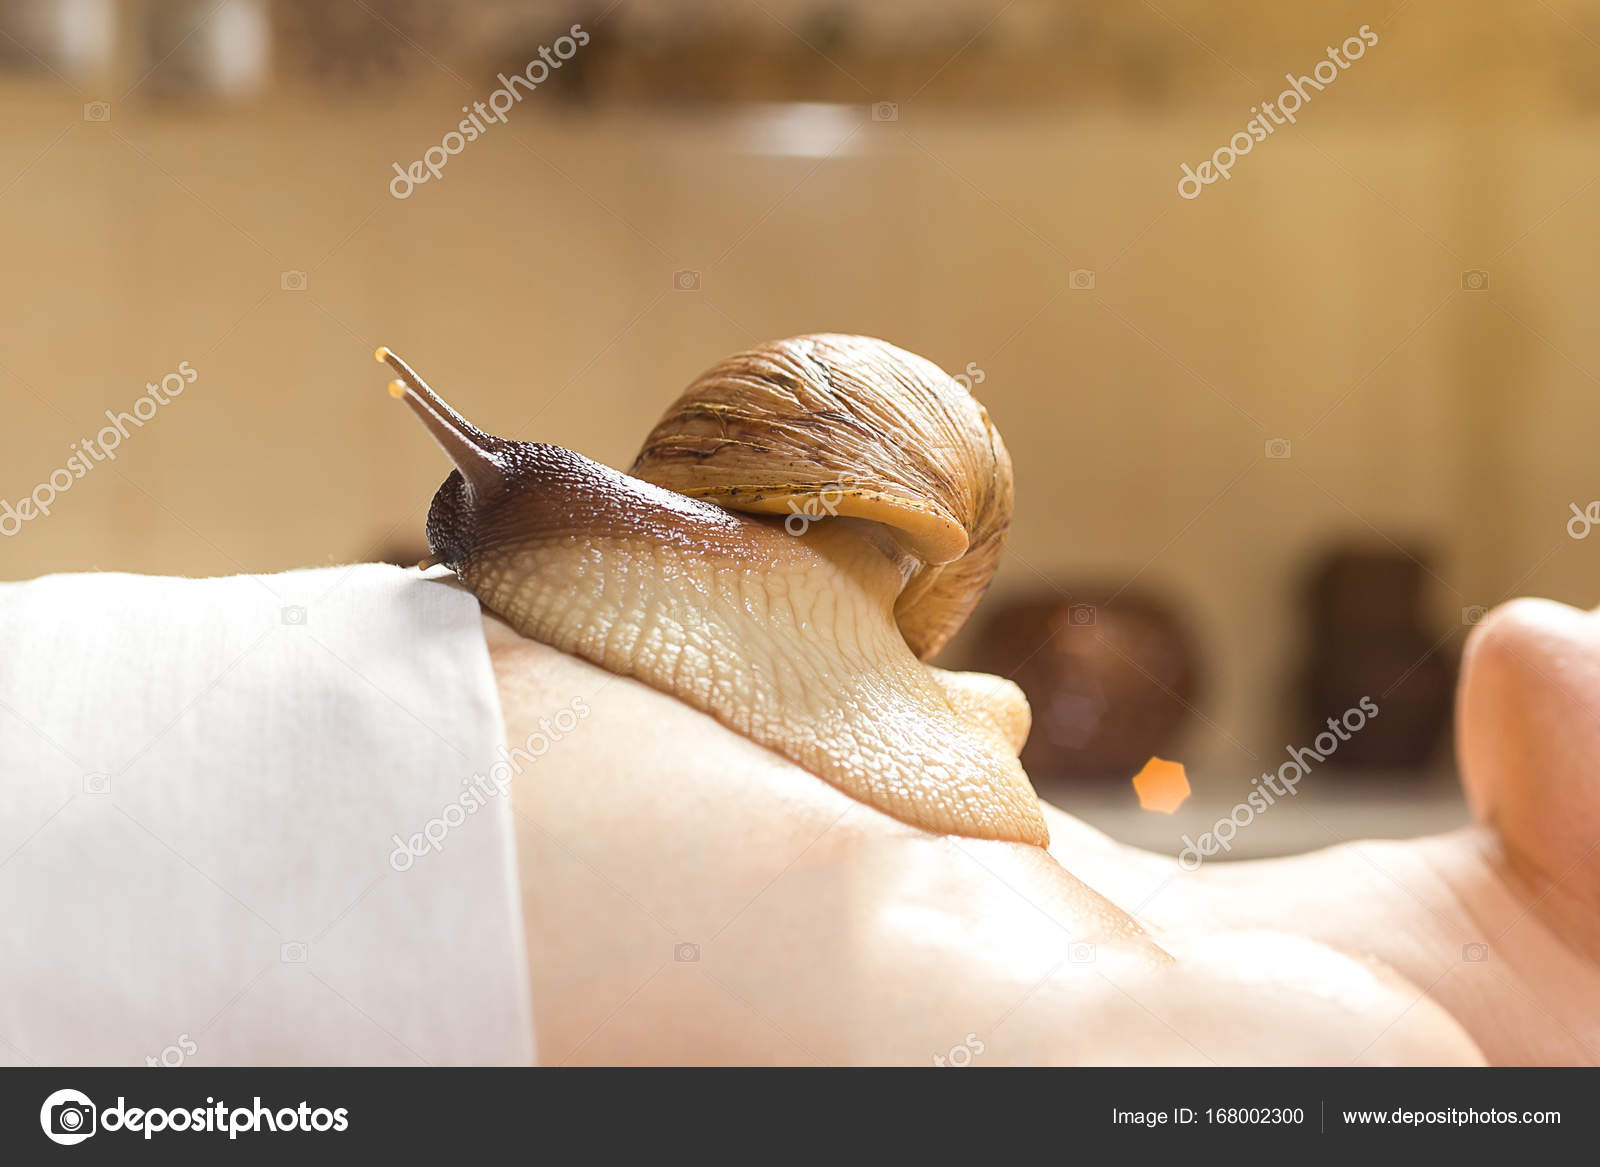 Achatina snails in cosmetology: how to use 6